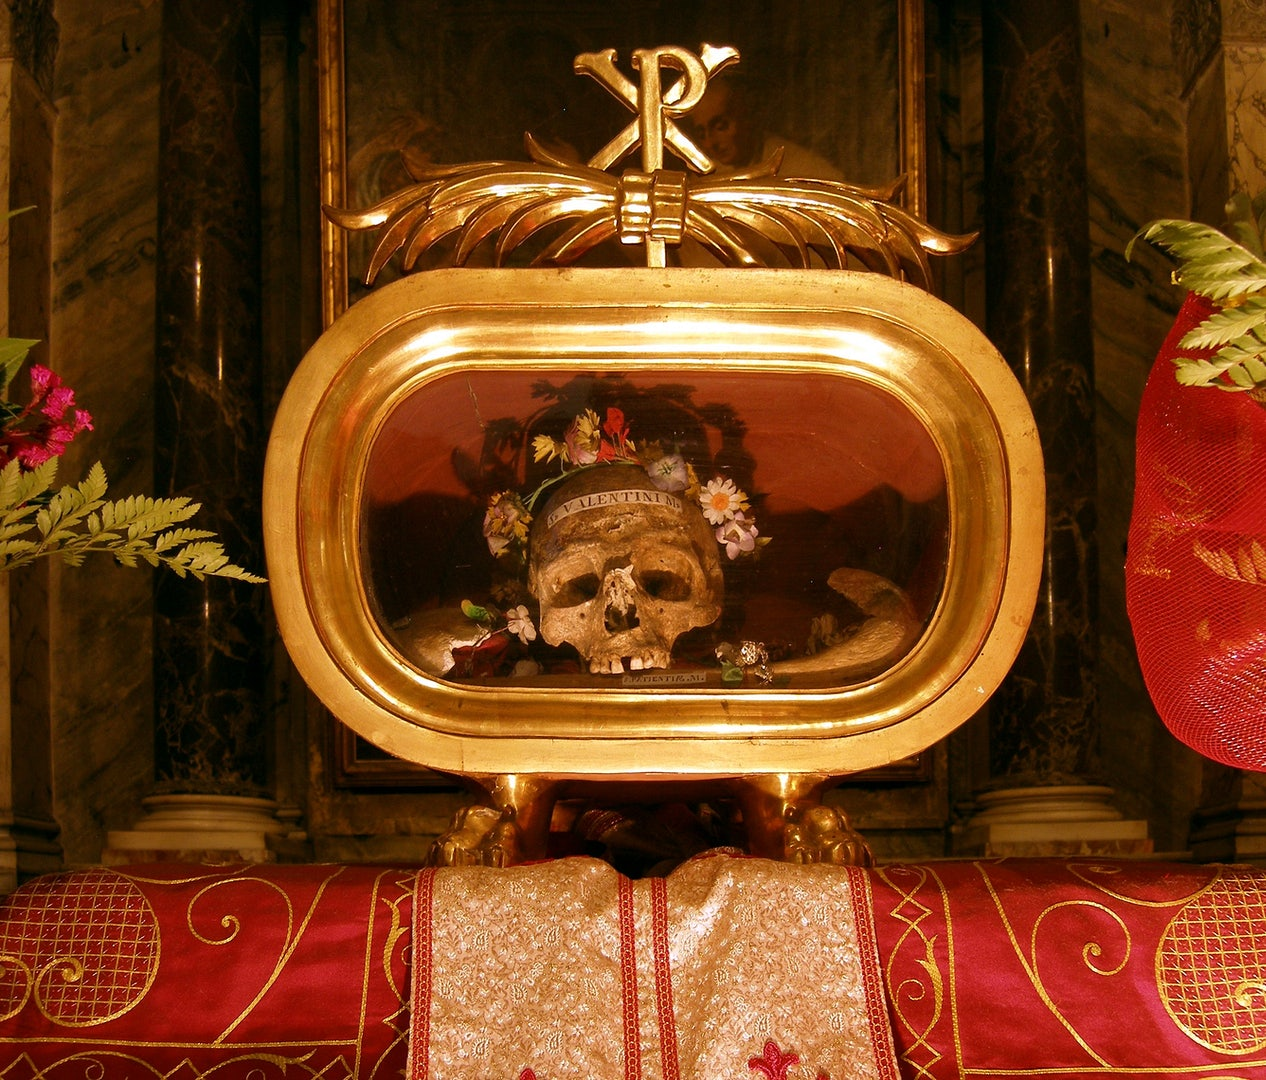 Skull of Saint Valentine